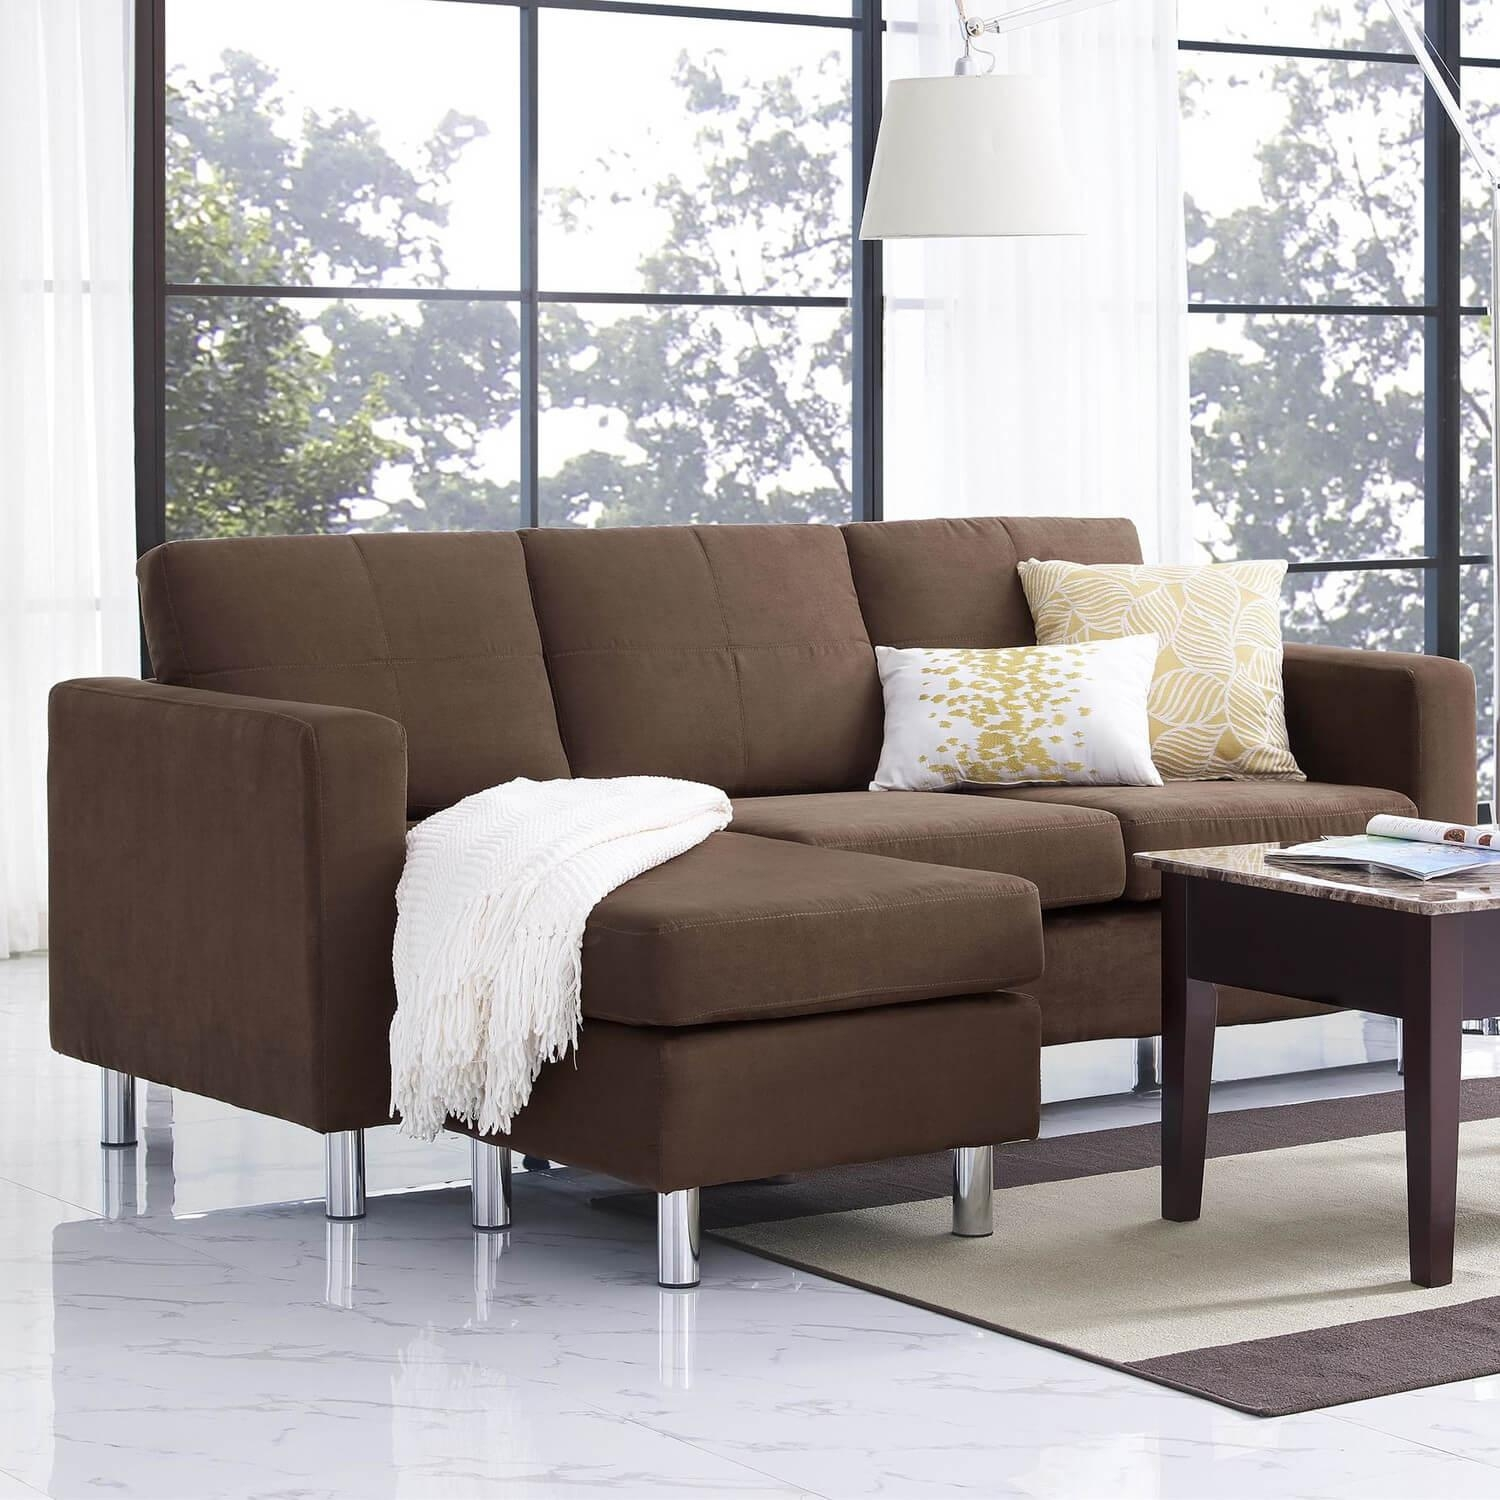 Furniture & Sofa: Perfect Small Spaces Configurable Sectional Sofa With Regard To Tiny Sofas (Image 4 of 20)